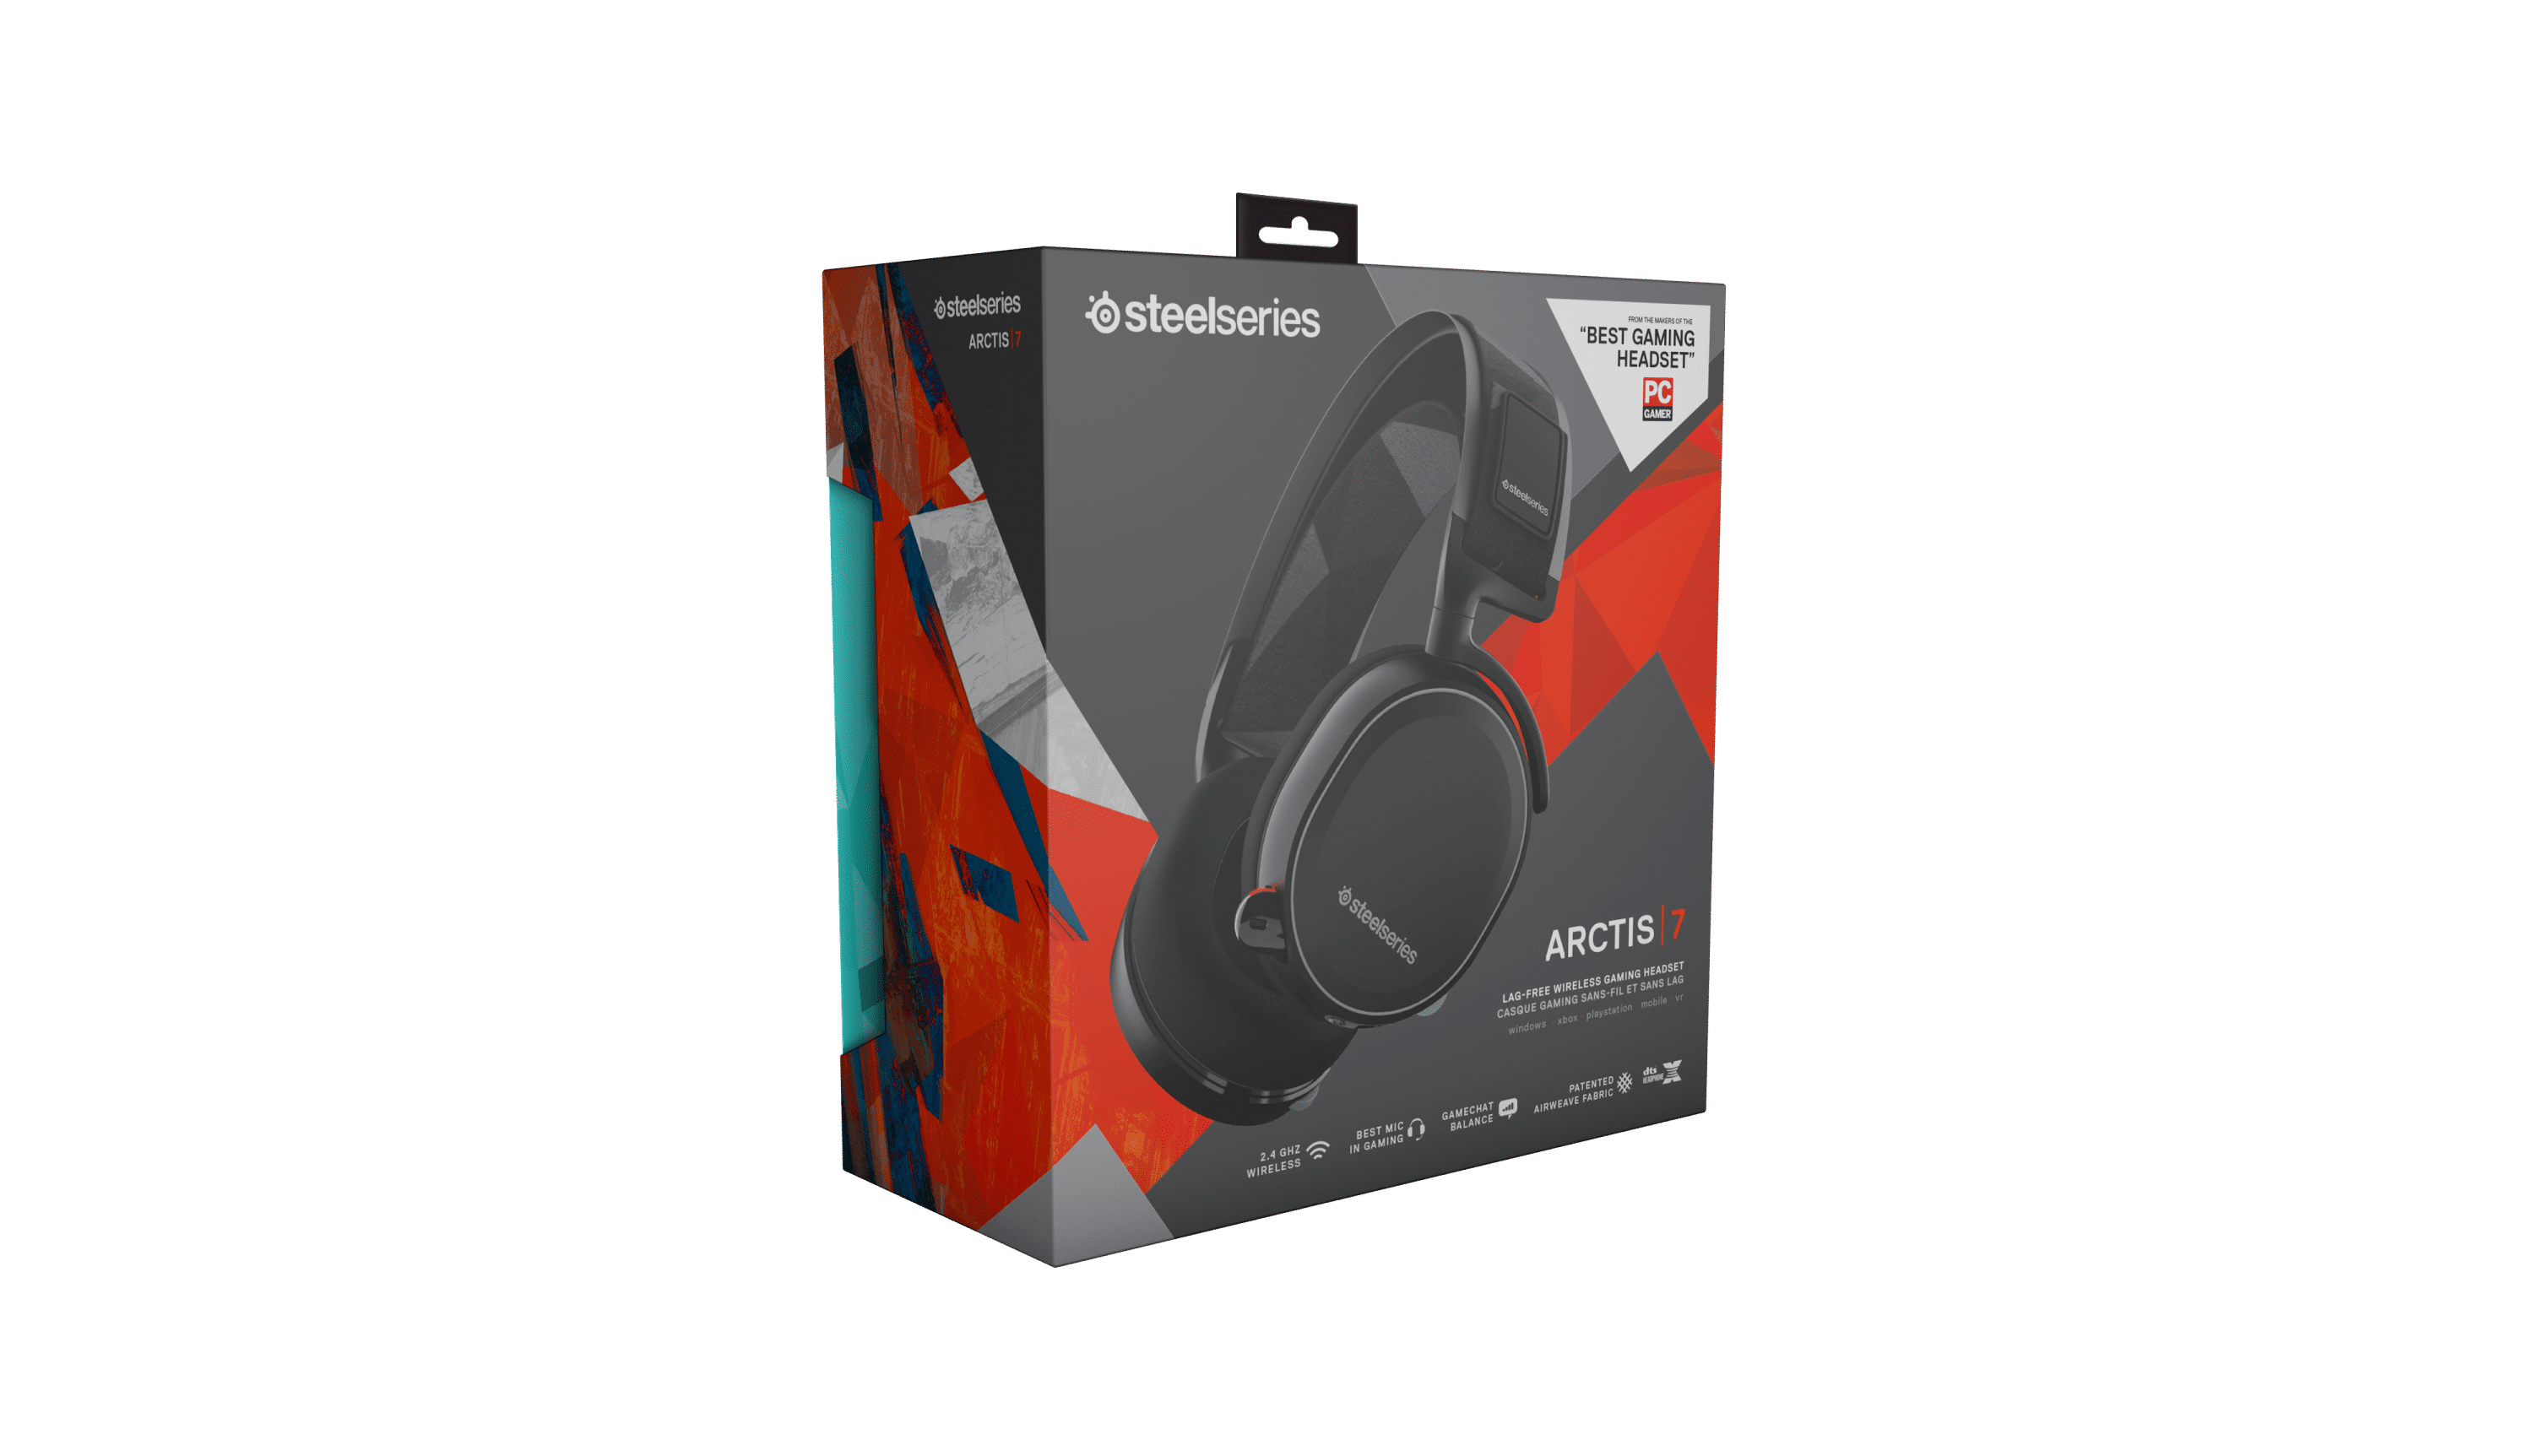 Photo of SteelSeries Arctis 7 Wireless Gaming-Headset bei Otto 42% günstiger als in anderen Shops!*